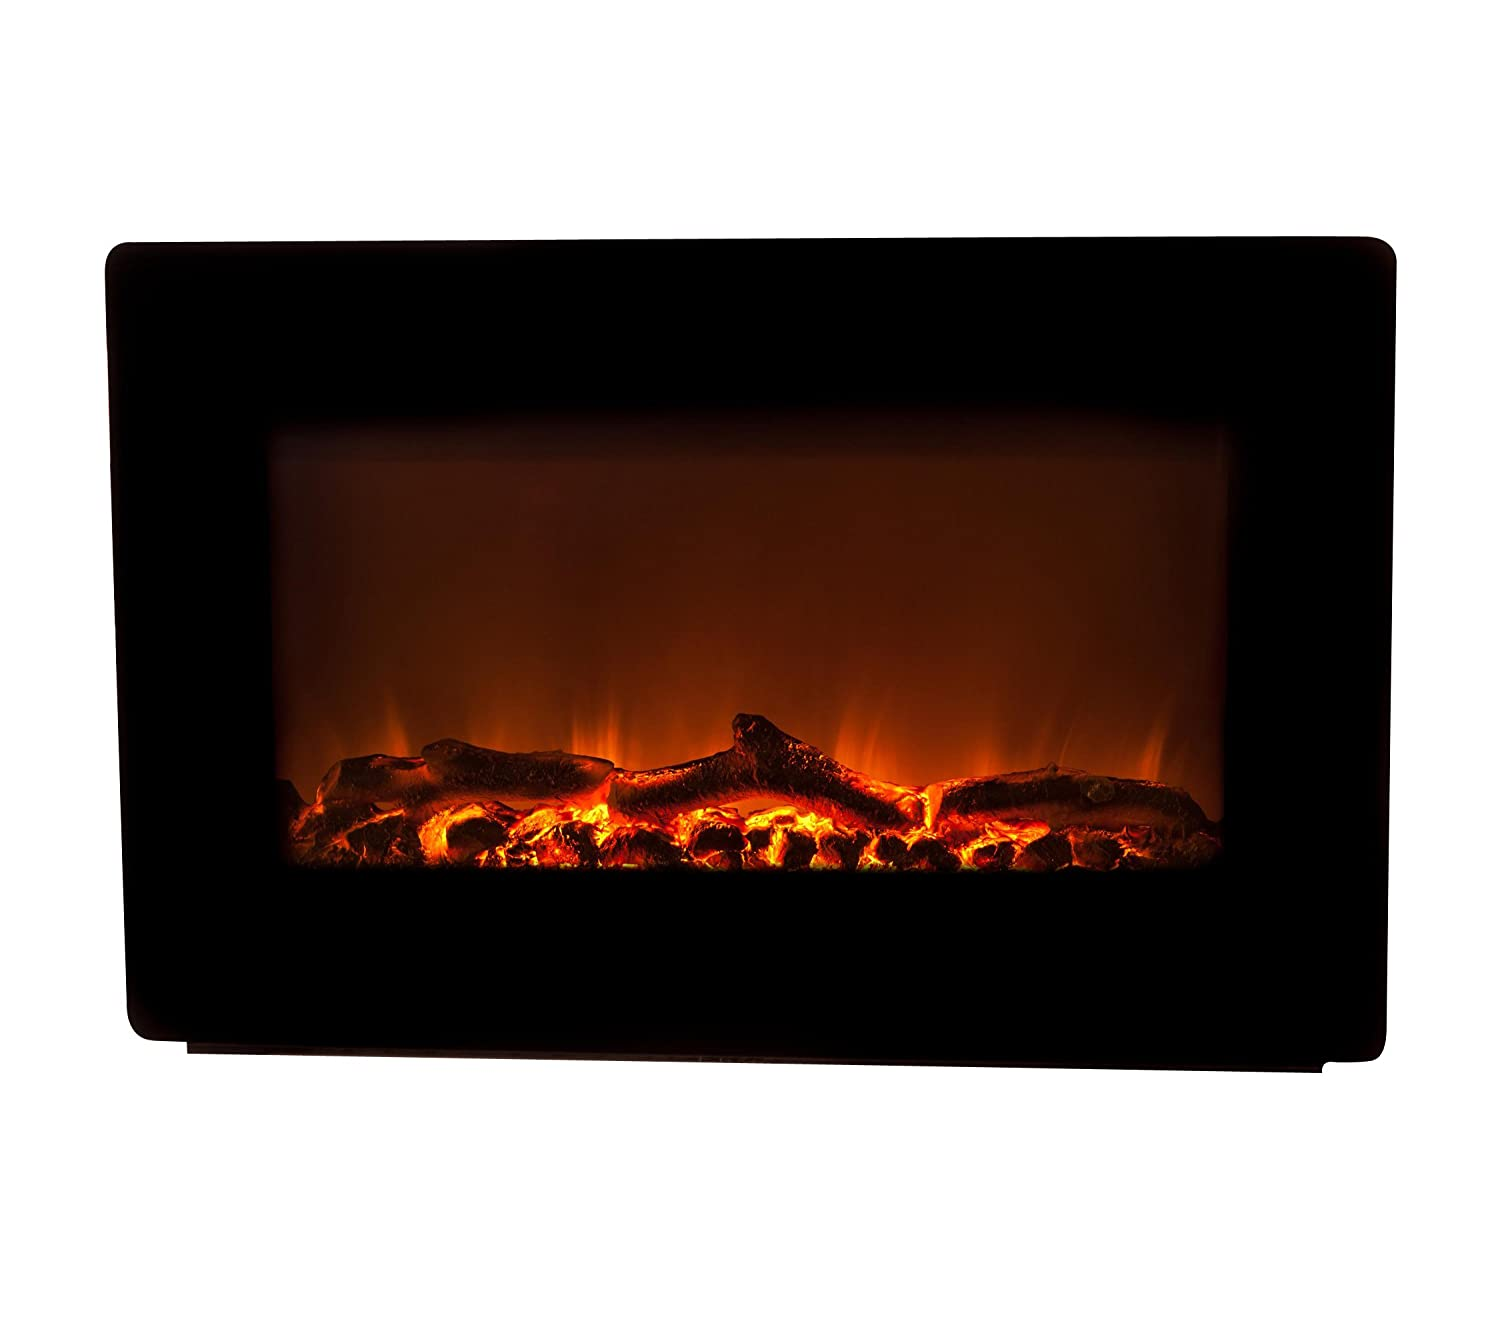 Amazon.com: Fire Sense Black Wall Mounted Electric Fireplace: Home & Kitchen